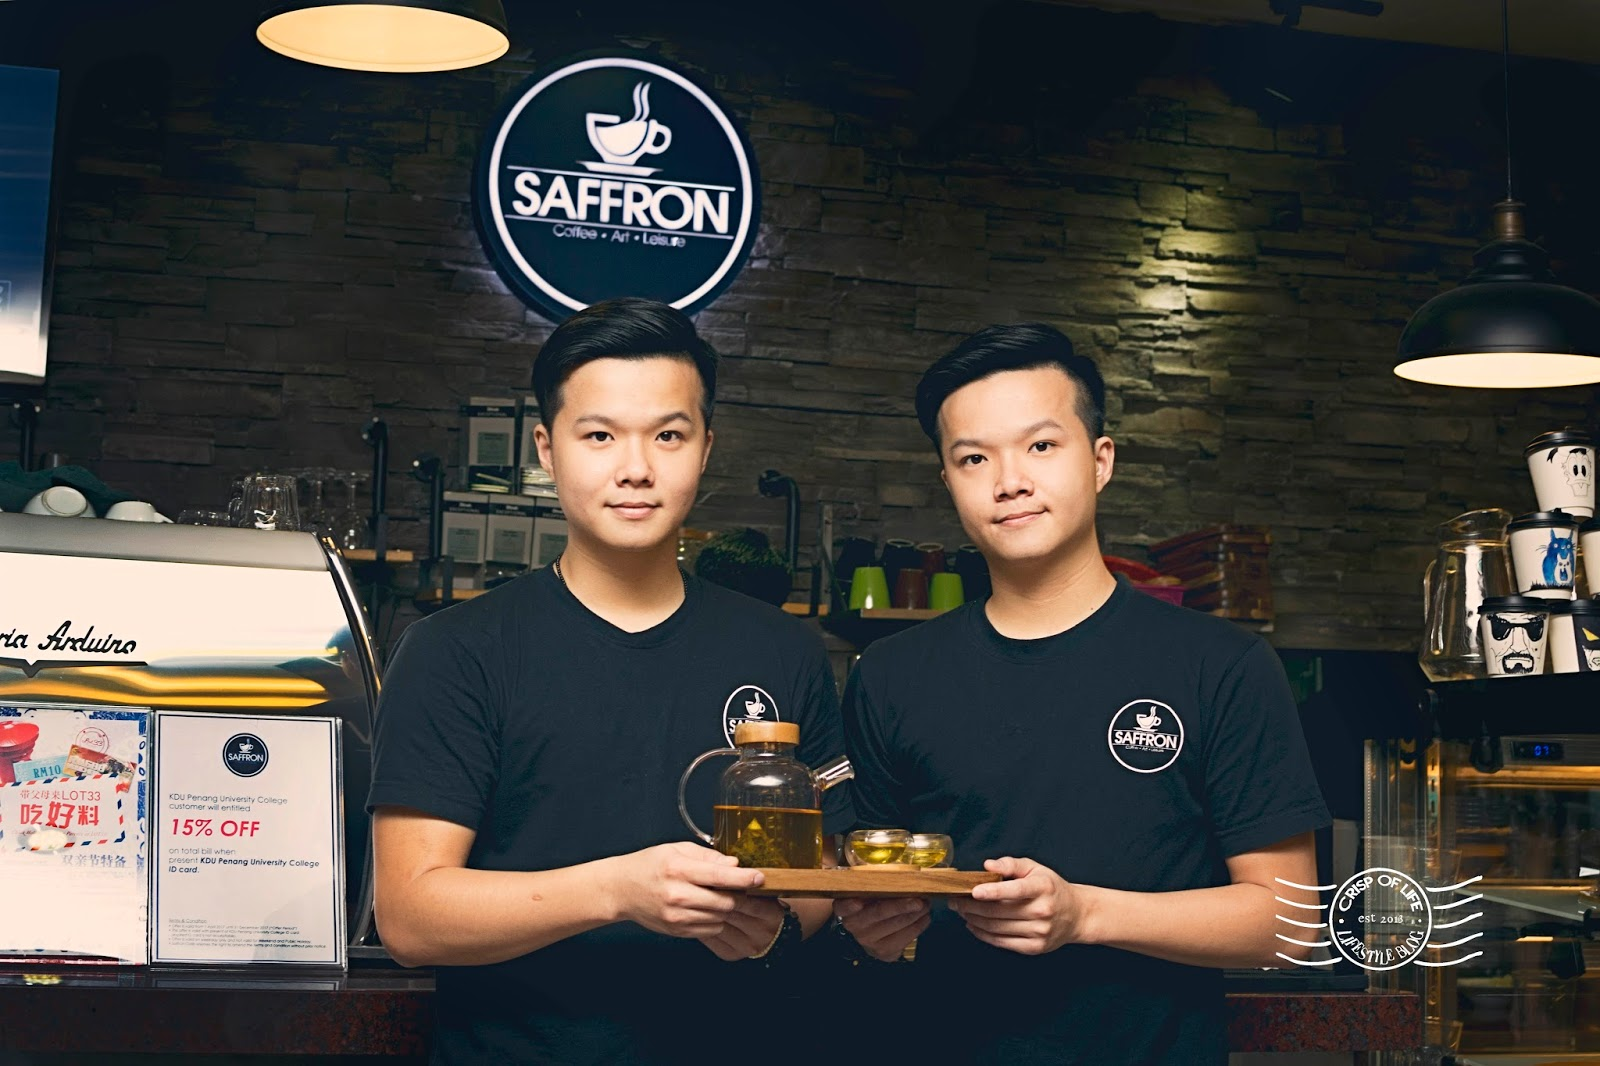 Saffron @ Lot 33, Prangin Mall, Penang